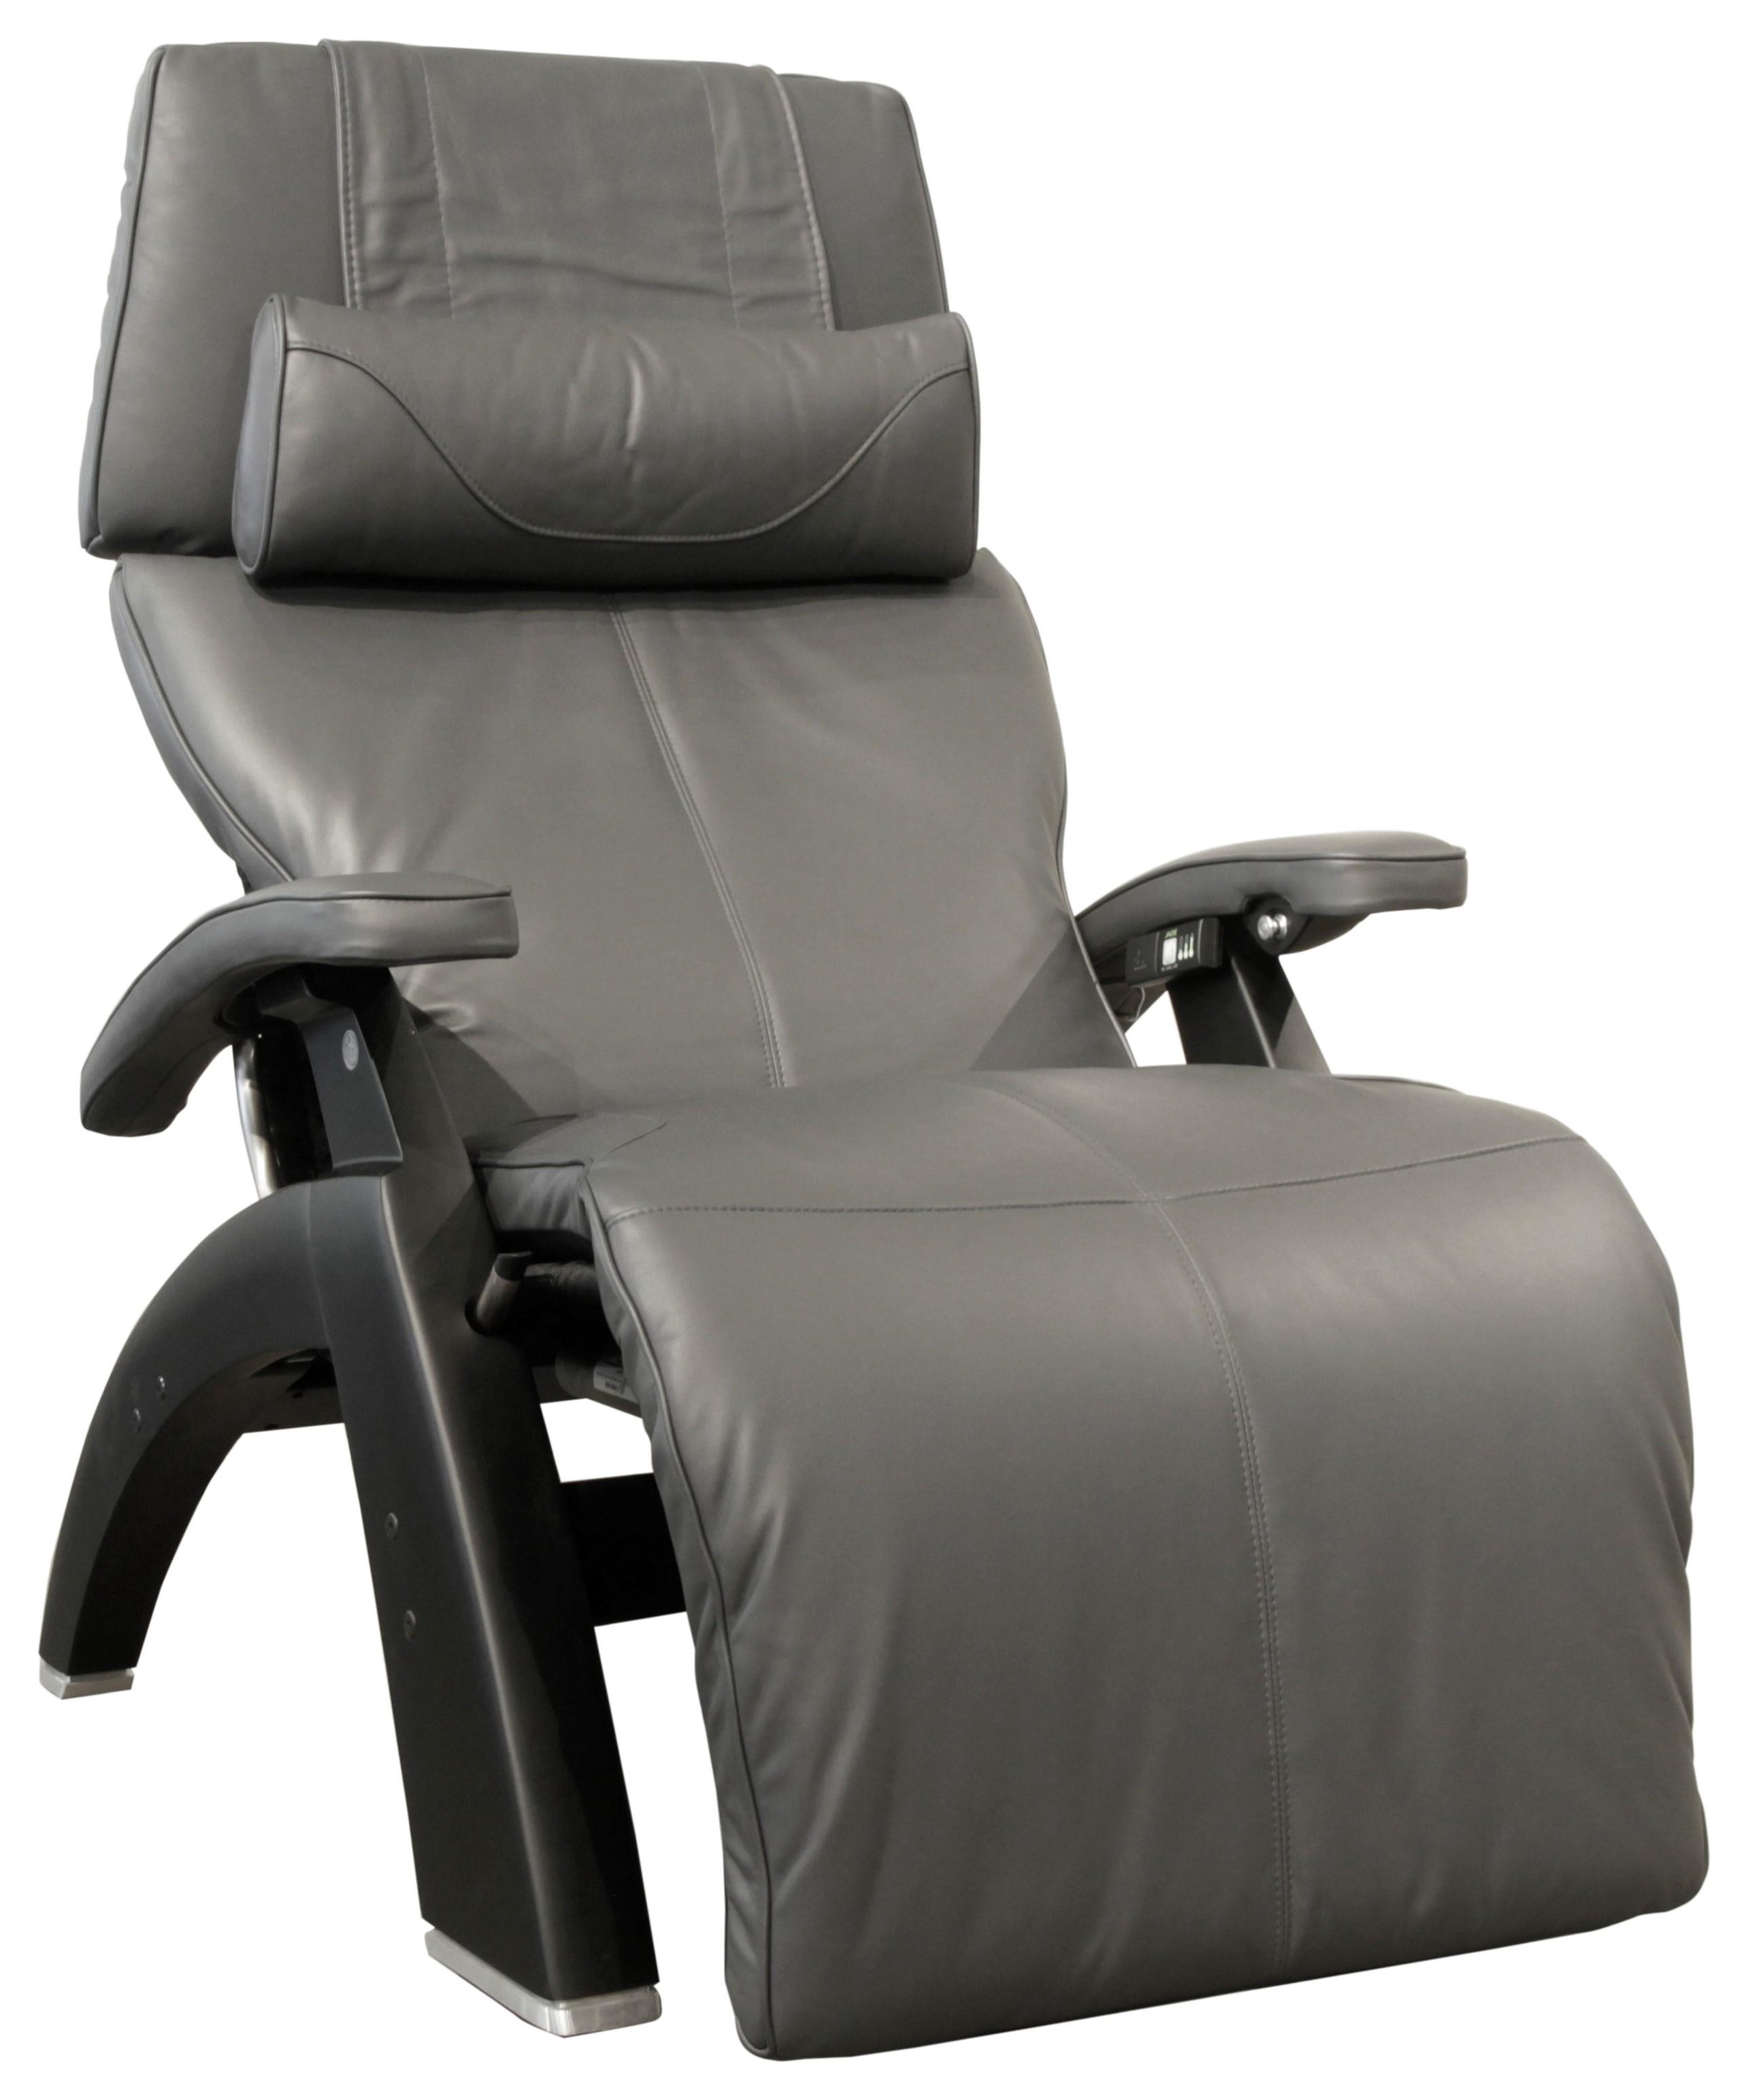 PC LIVE Massage Chair by Human Touch at HomeWorld Furniture